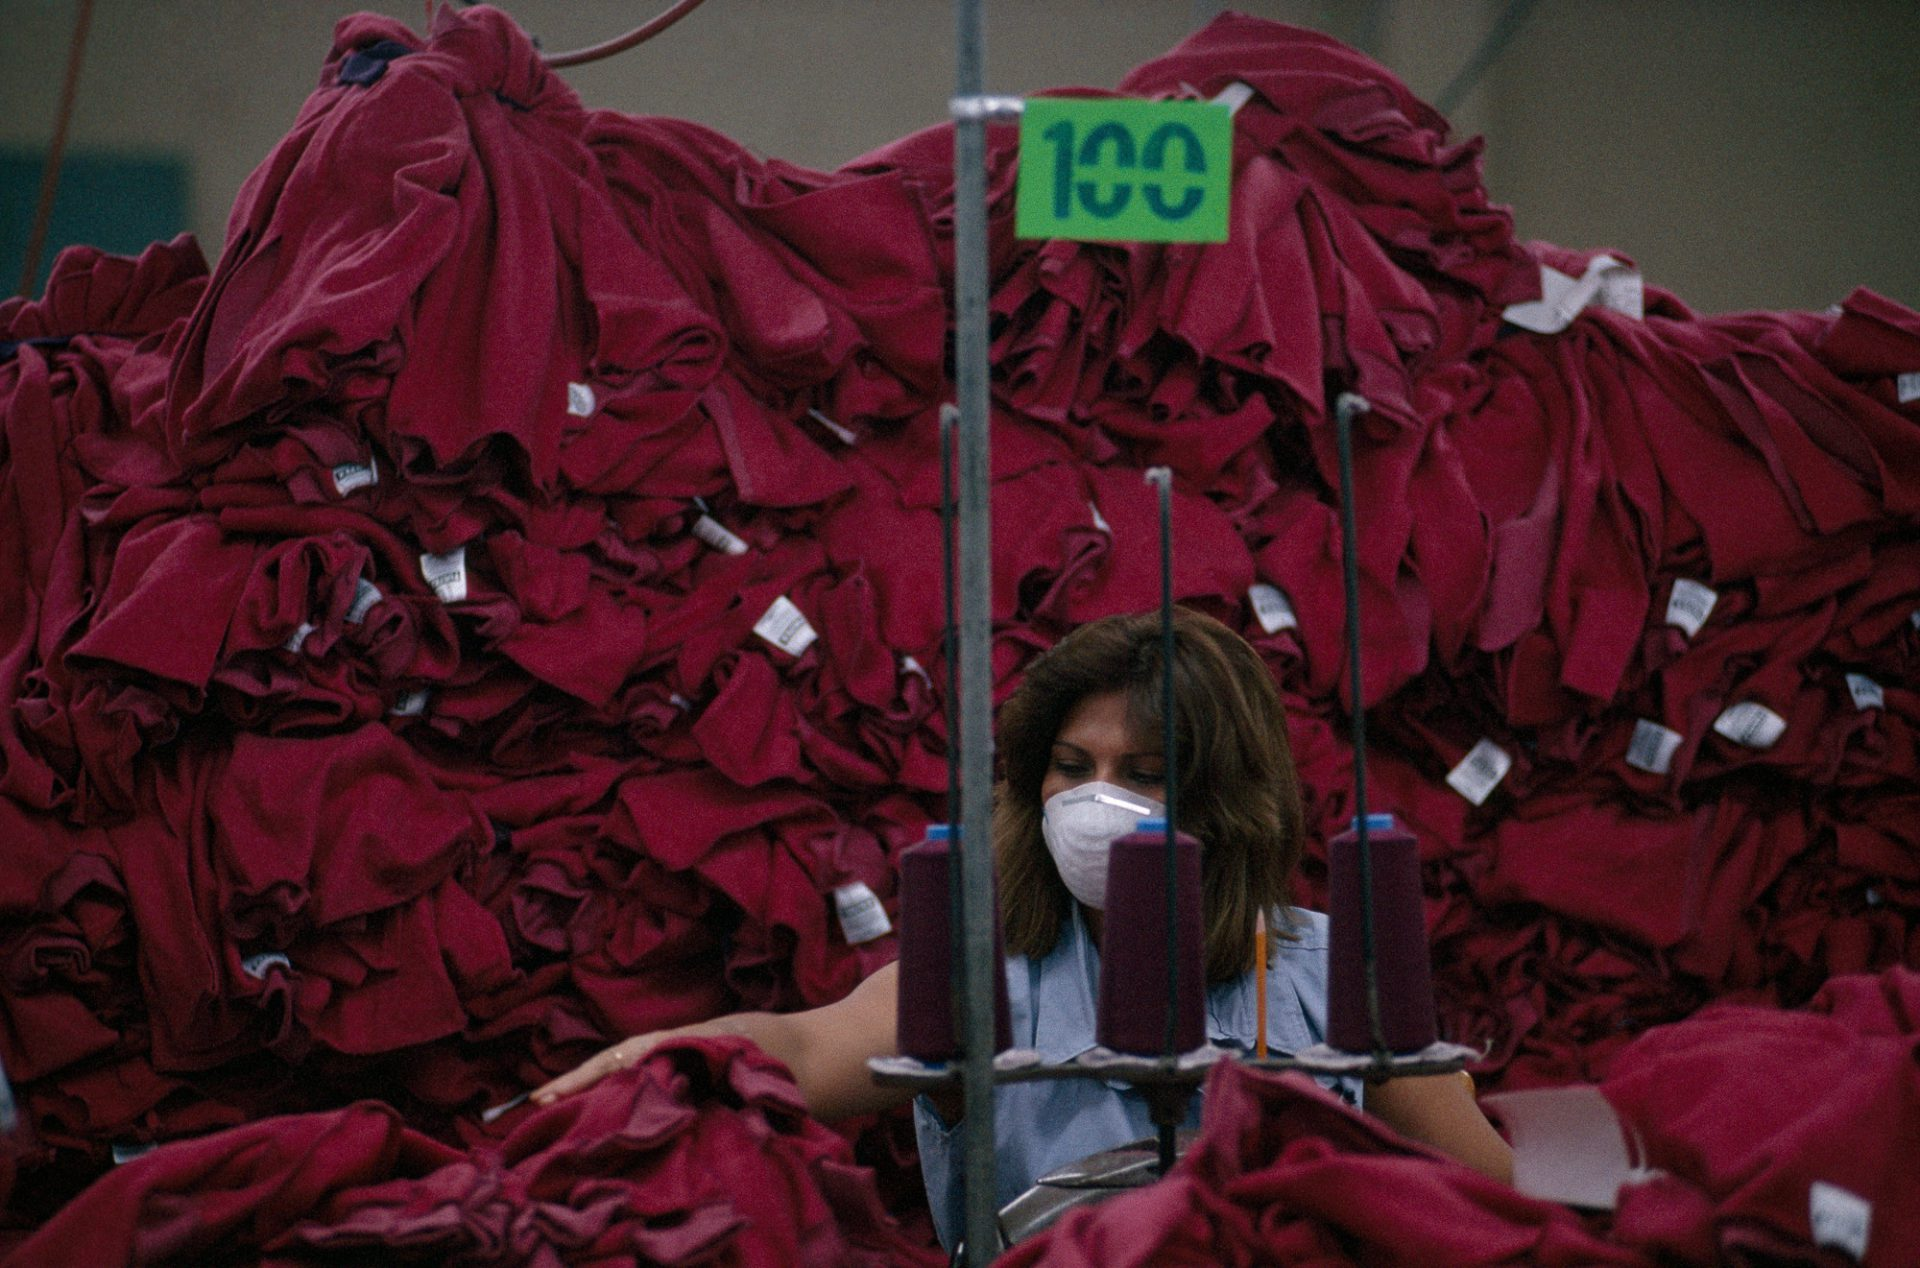 Photo: Surrounded by a mountain of maroon sweatshirts, top seamstress Rolanda Vasquez Hernandez assembles more sweatshirts to add to the pile.